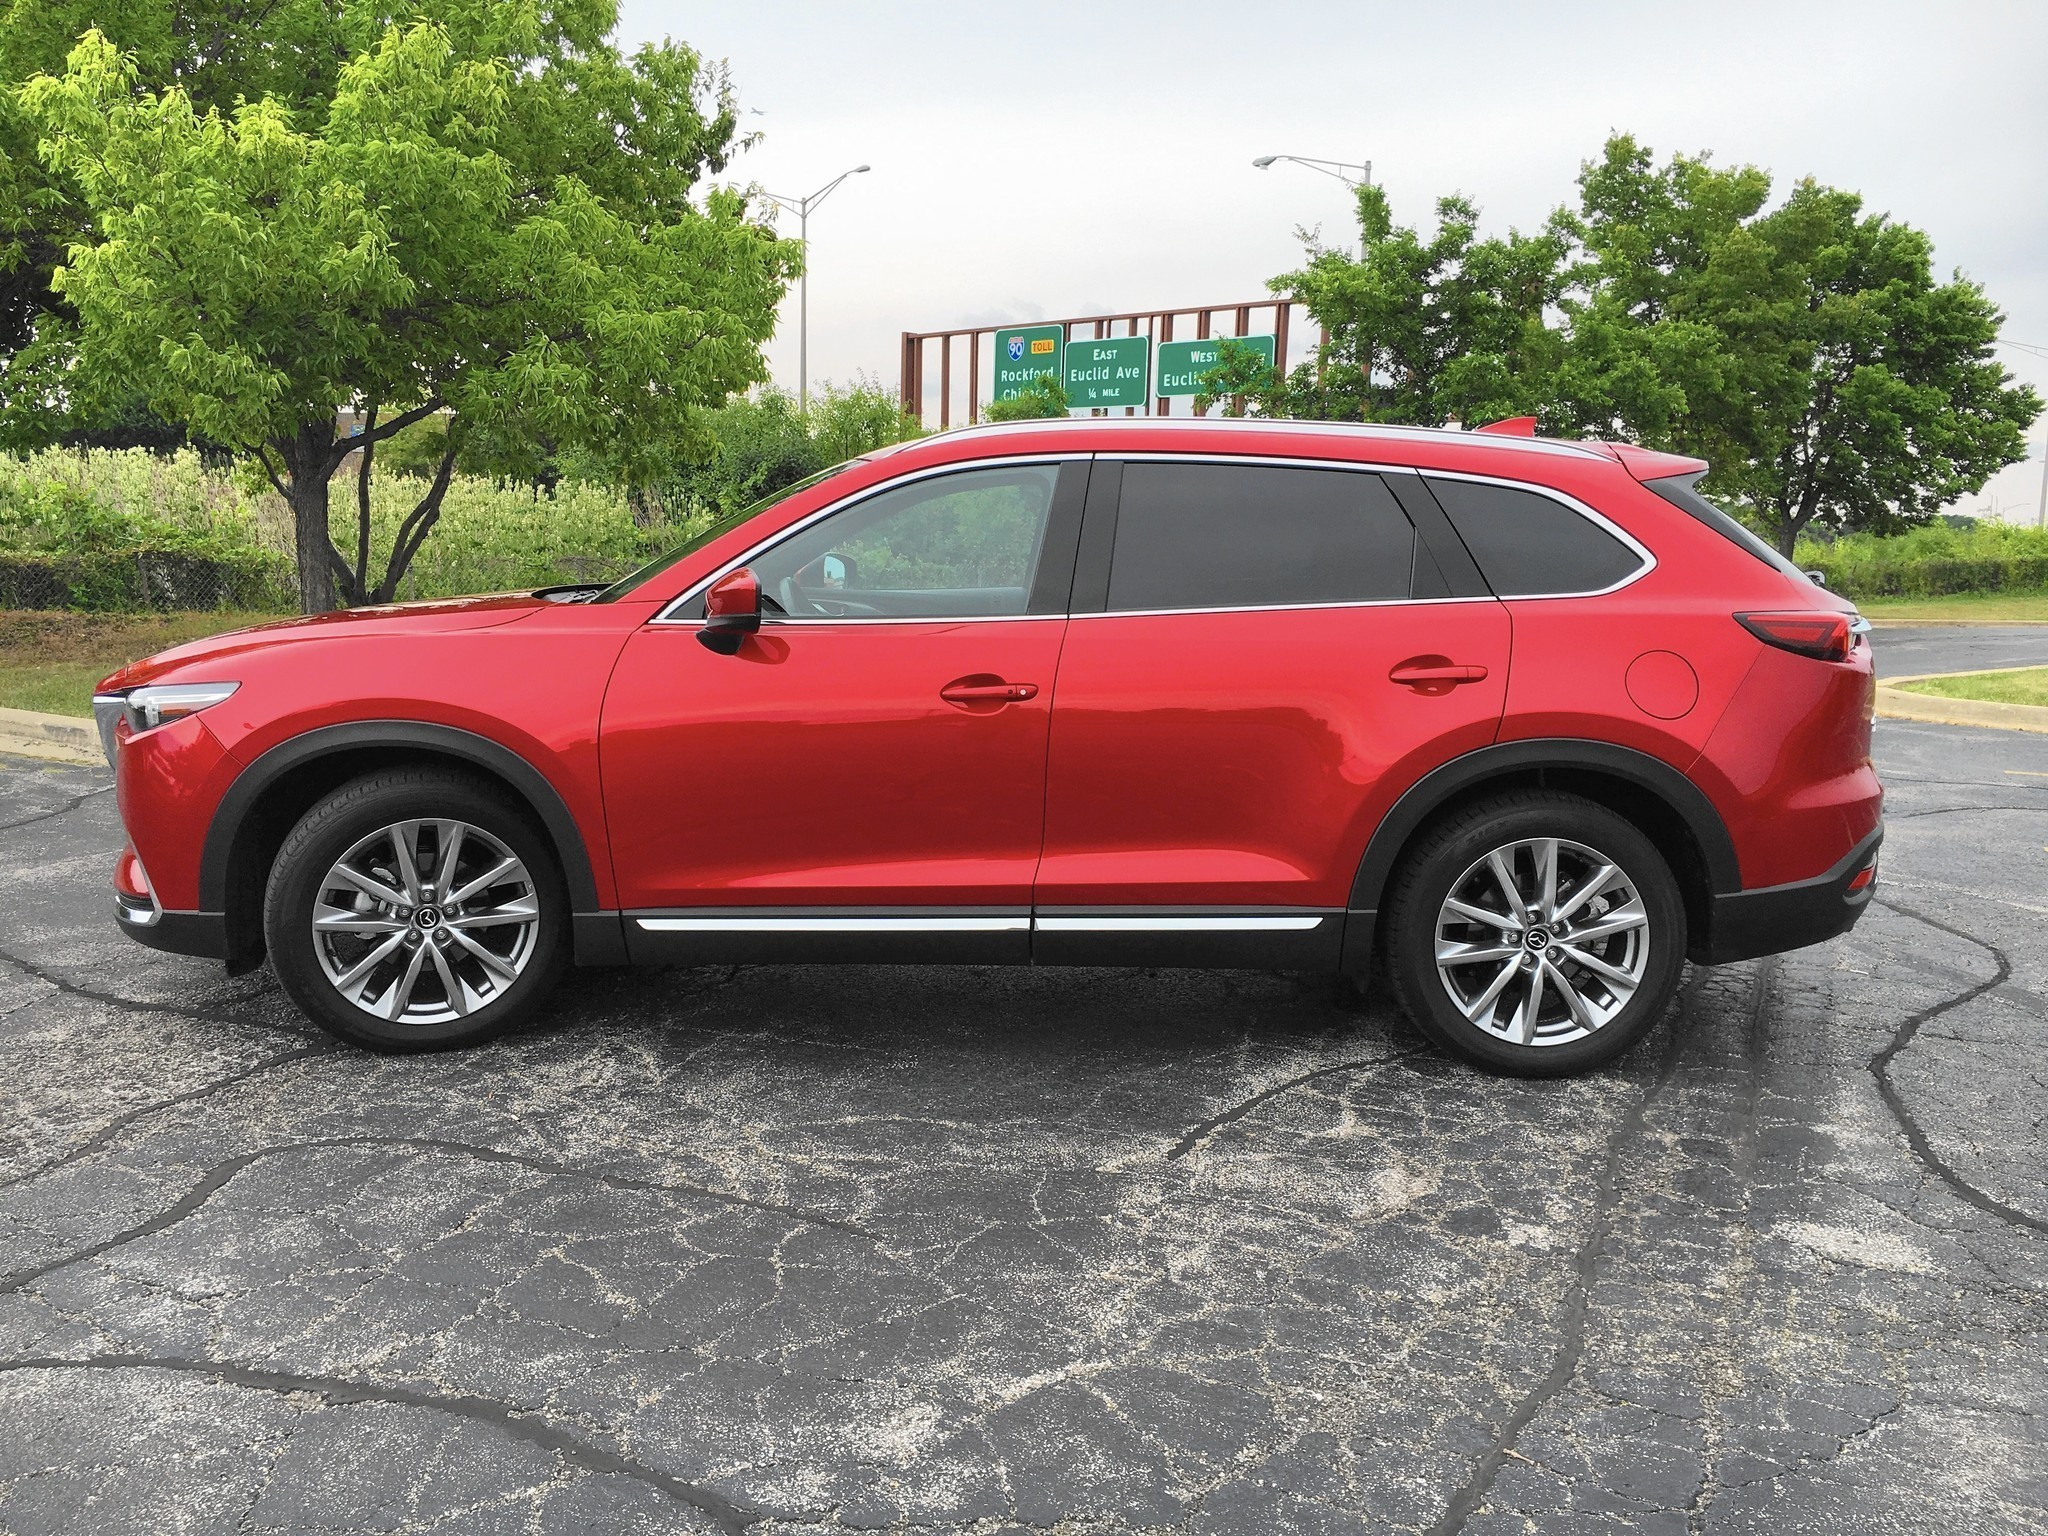 2016 mazda cx 9 gt with awd gallery chicago tribune. Black Bedroom Furniture Sets. Home Design Ideas